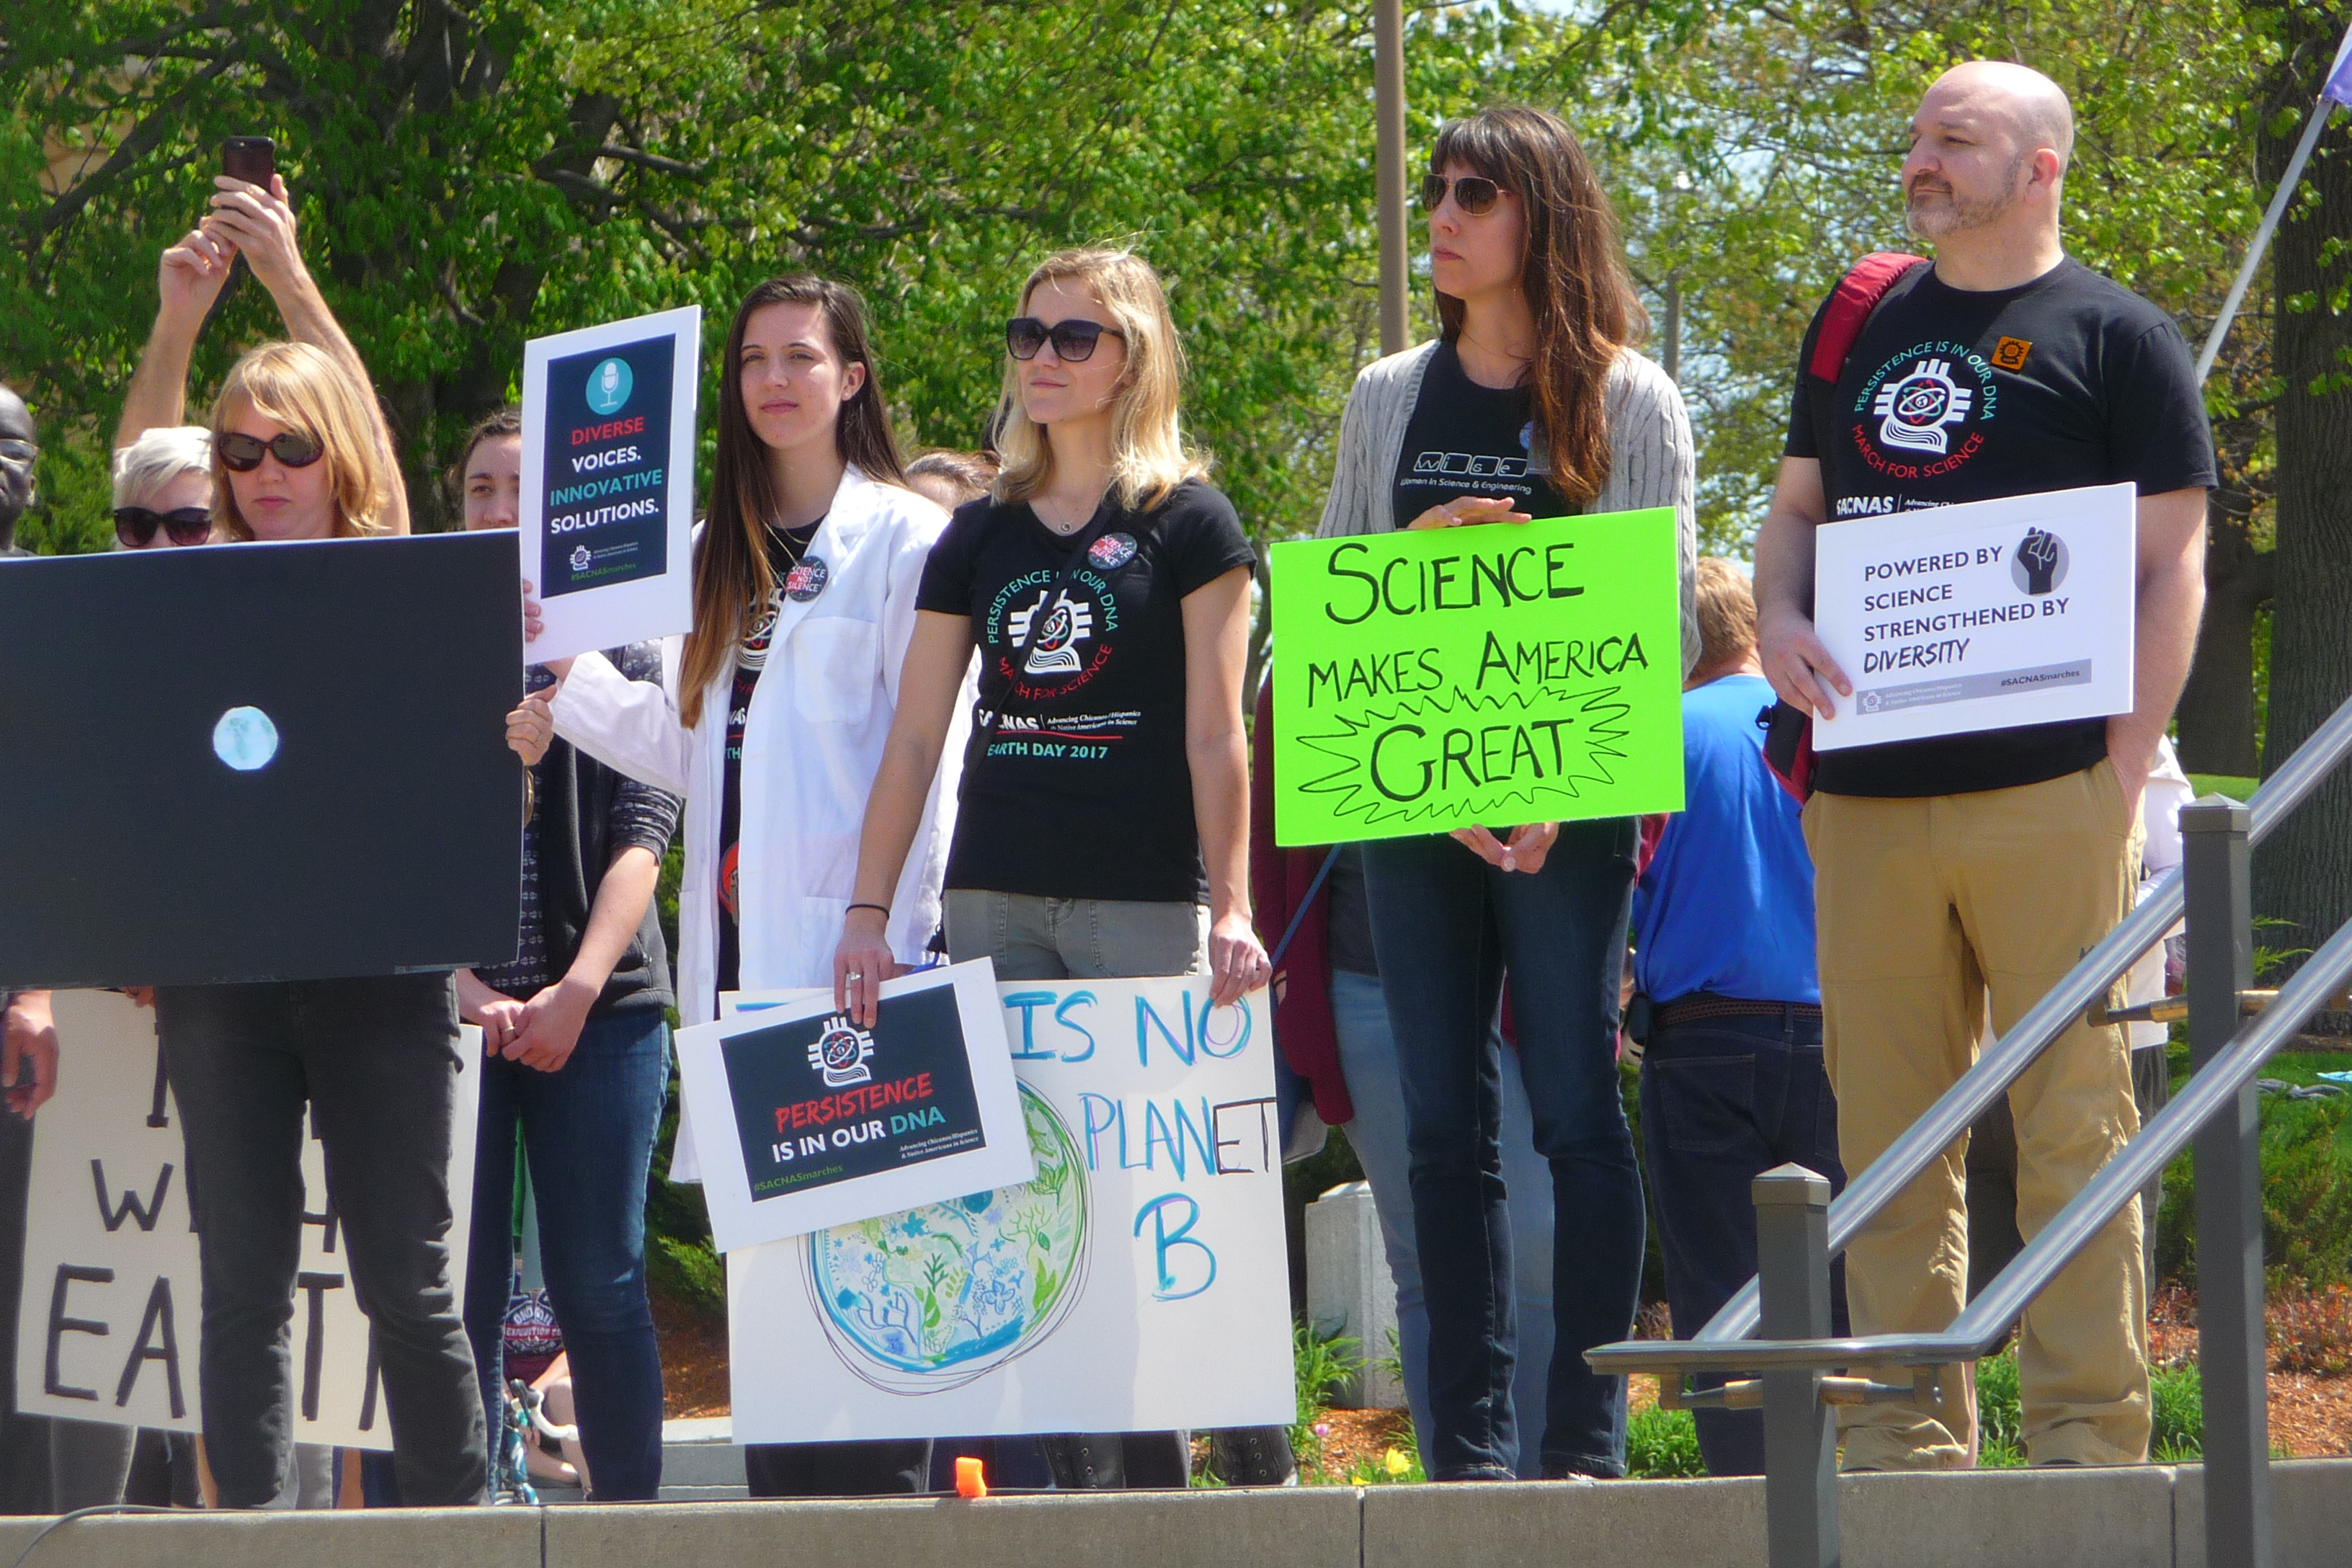 Science backers listen to speakers during the March for Science Iowa on April 22, 2017 at the Iowa State Capitol in Des Moines.